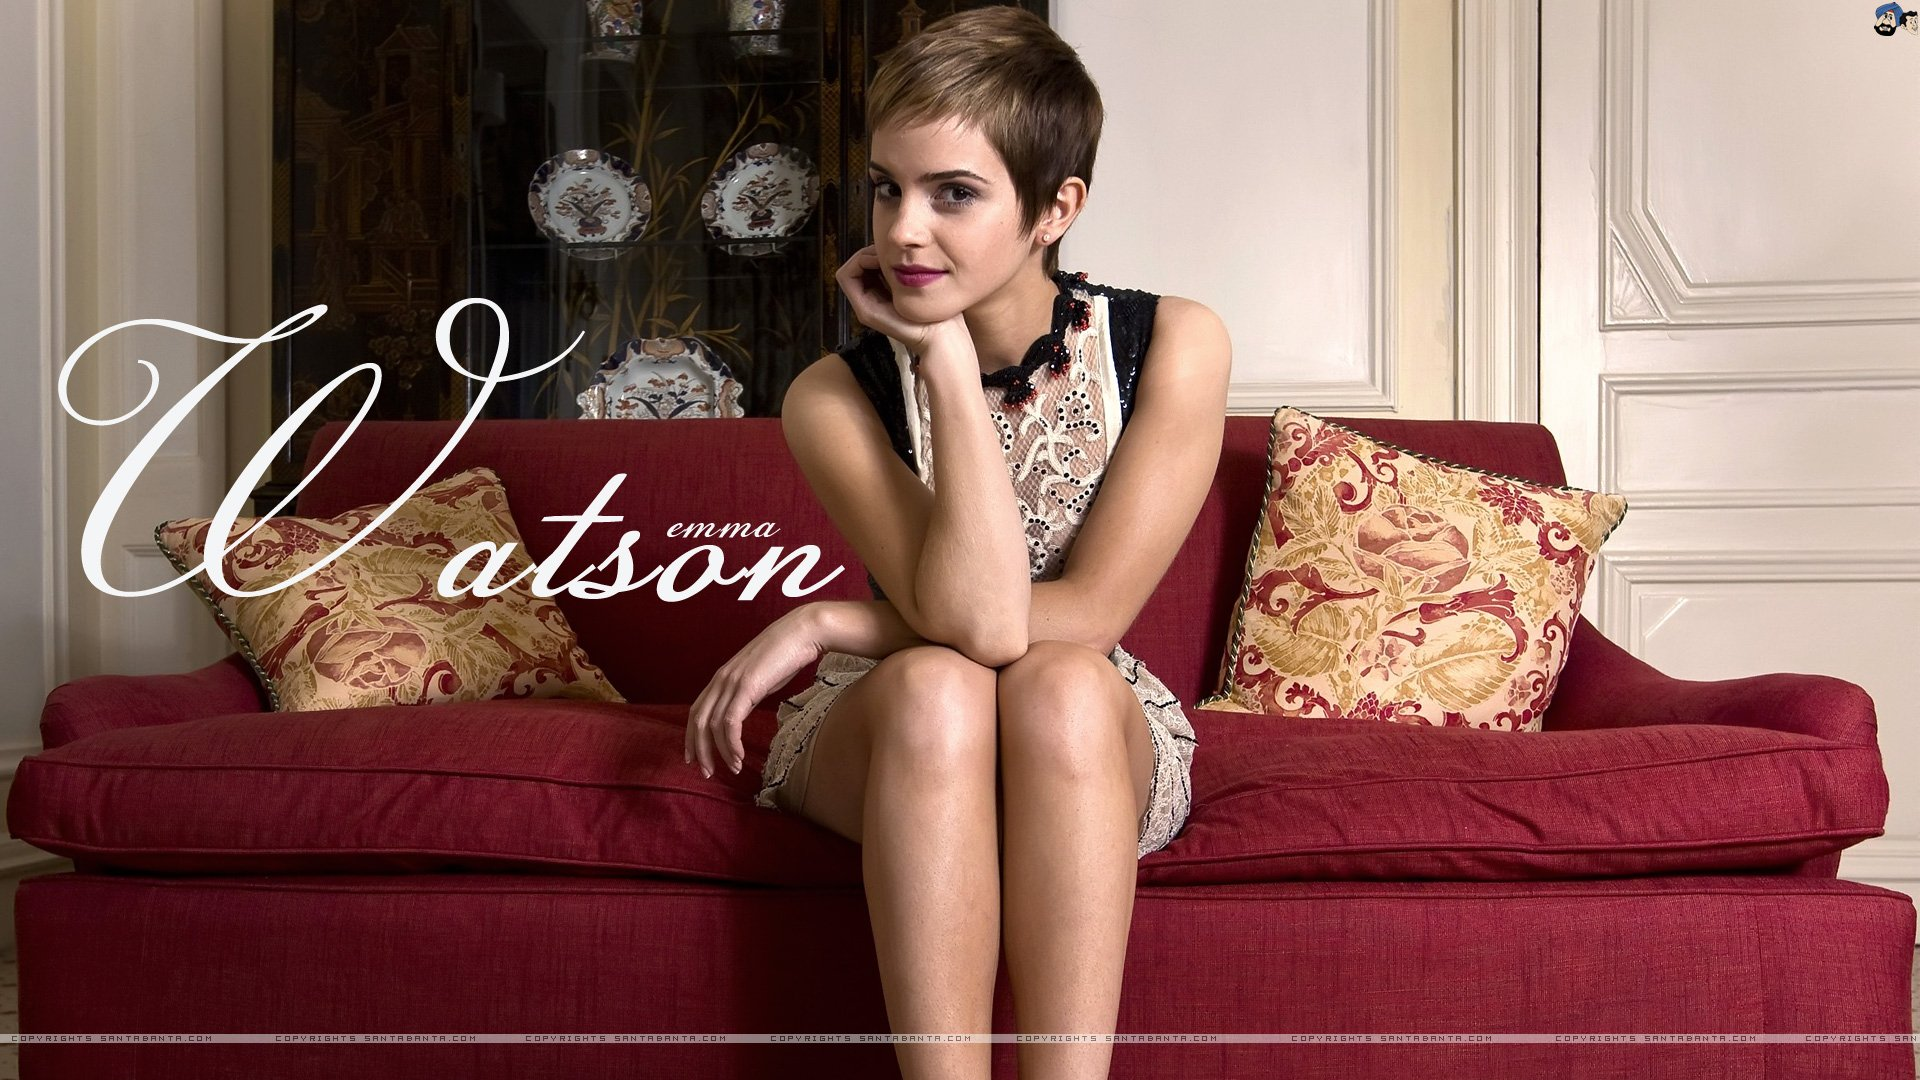 Celebrity - Emma Watson  Wallpaper